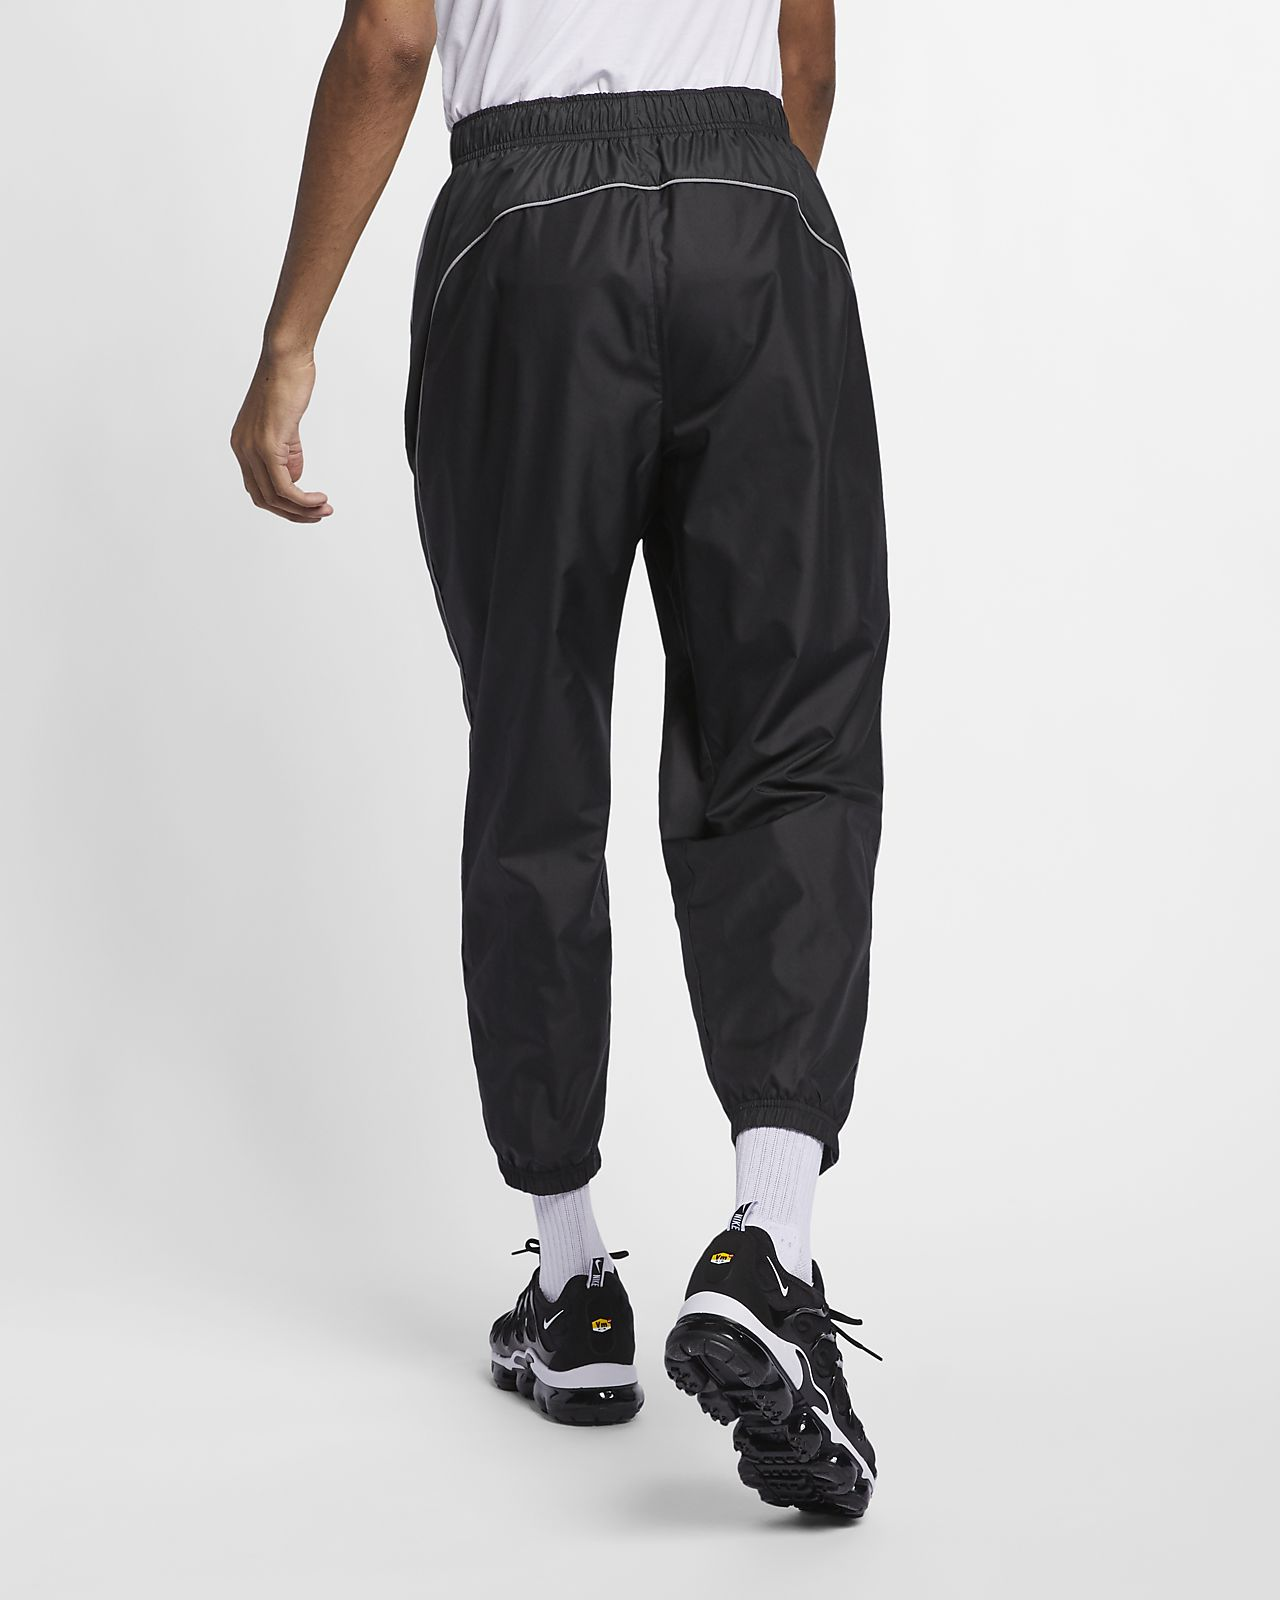 new style d744e 5c8a4 ... Pantalon de survêtement NikeLab Collection Tn pour Homme